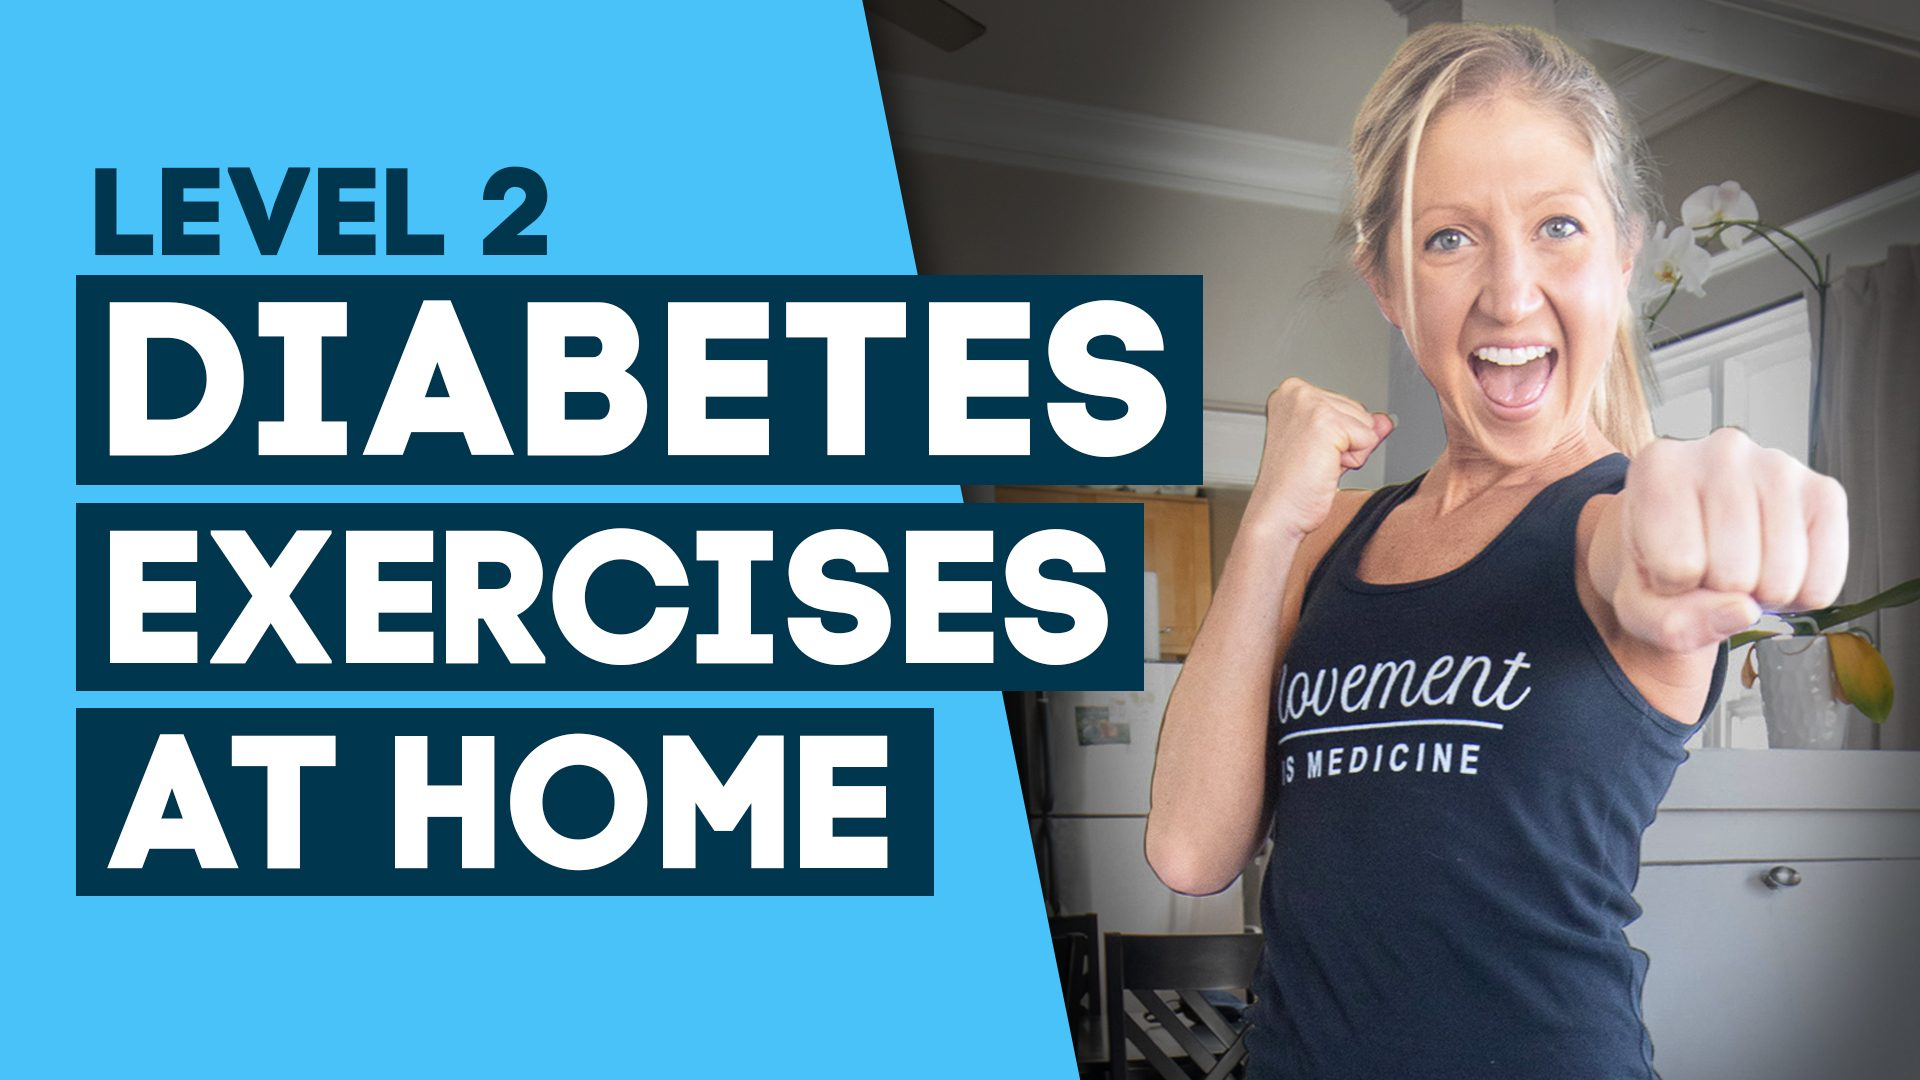 Diabetes Exercises At Home Workout- To Help Cure Diabetes (Level 2)